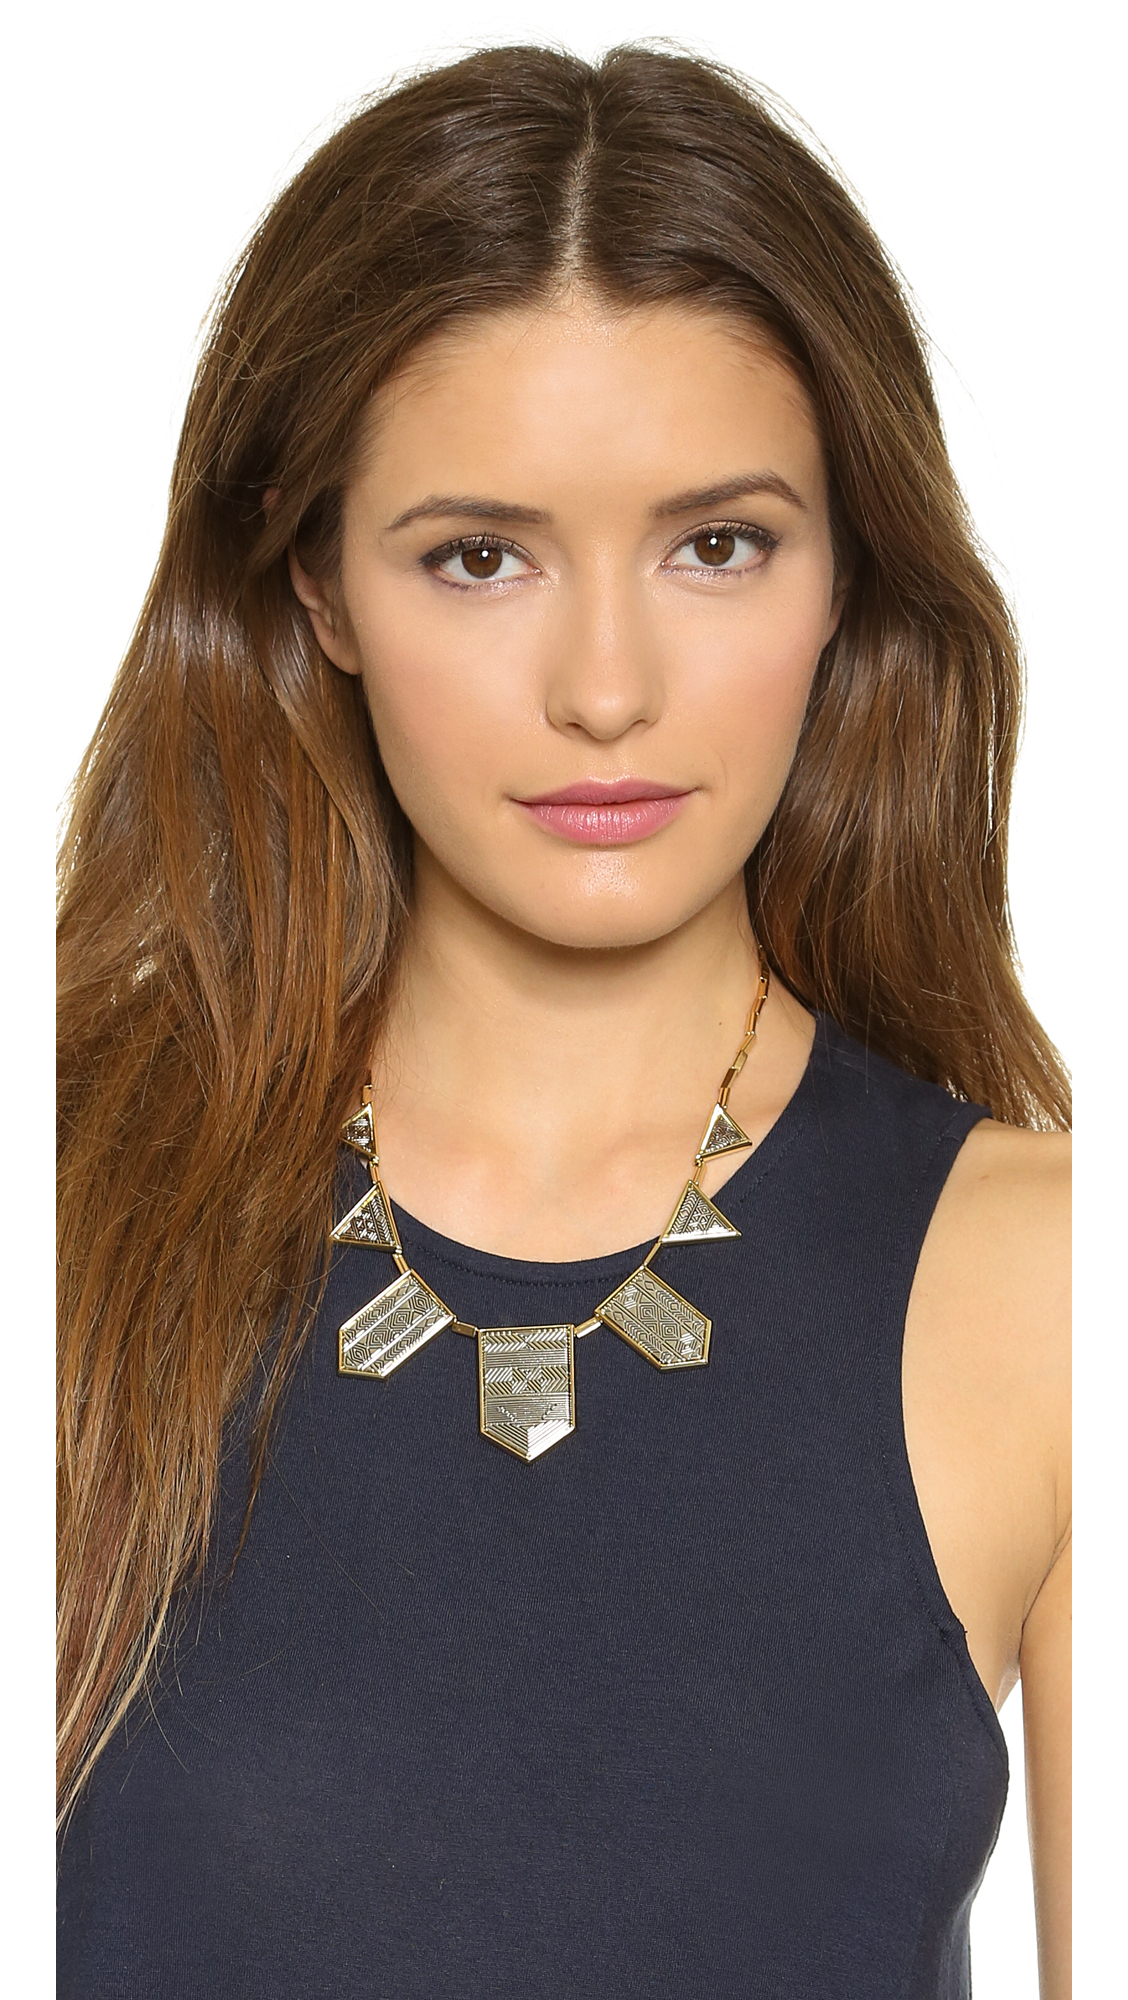 House Of Harlow Classic Station Pyramid Necklace in Metallic Gold P0Teqt